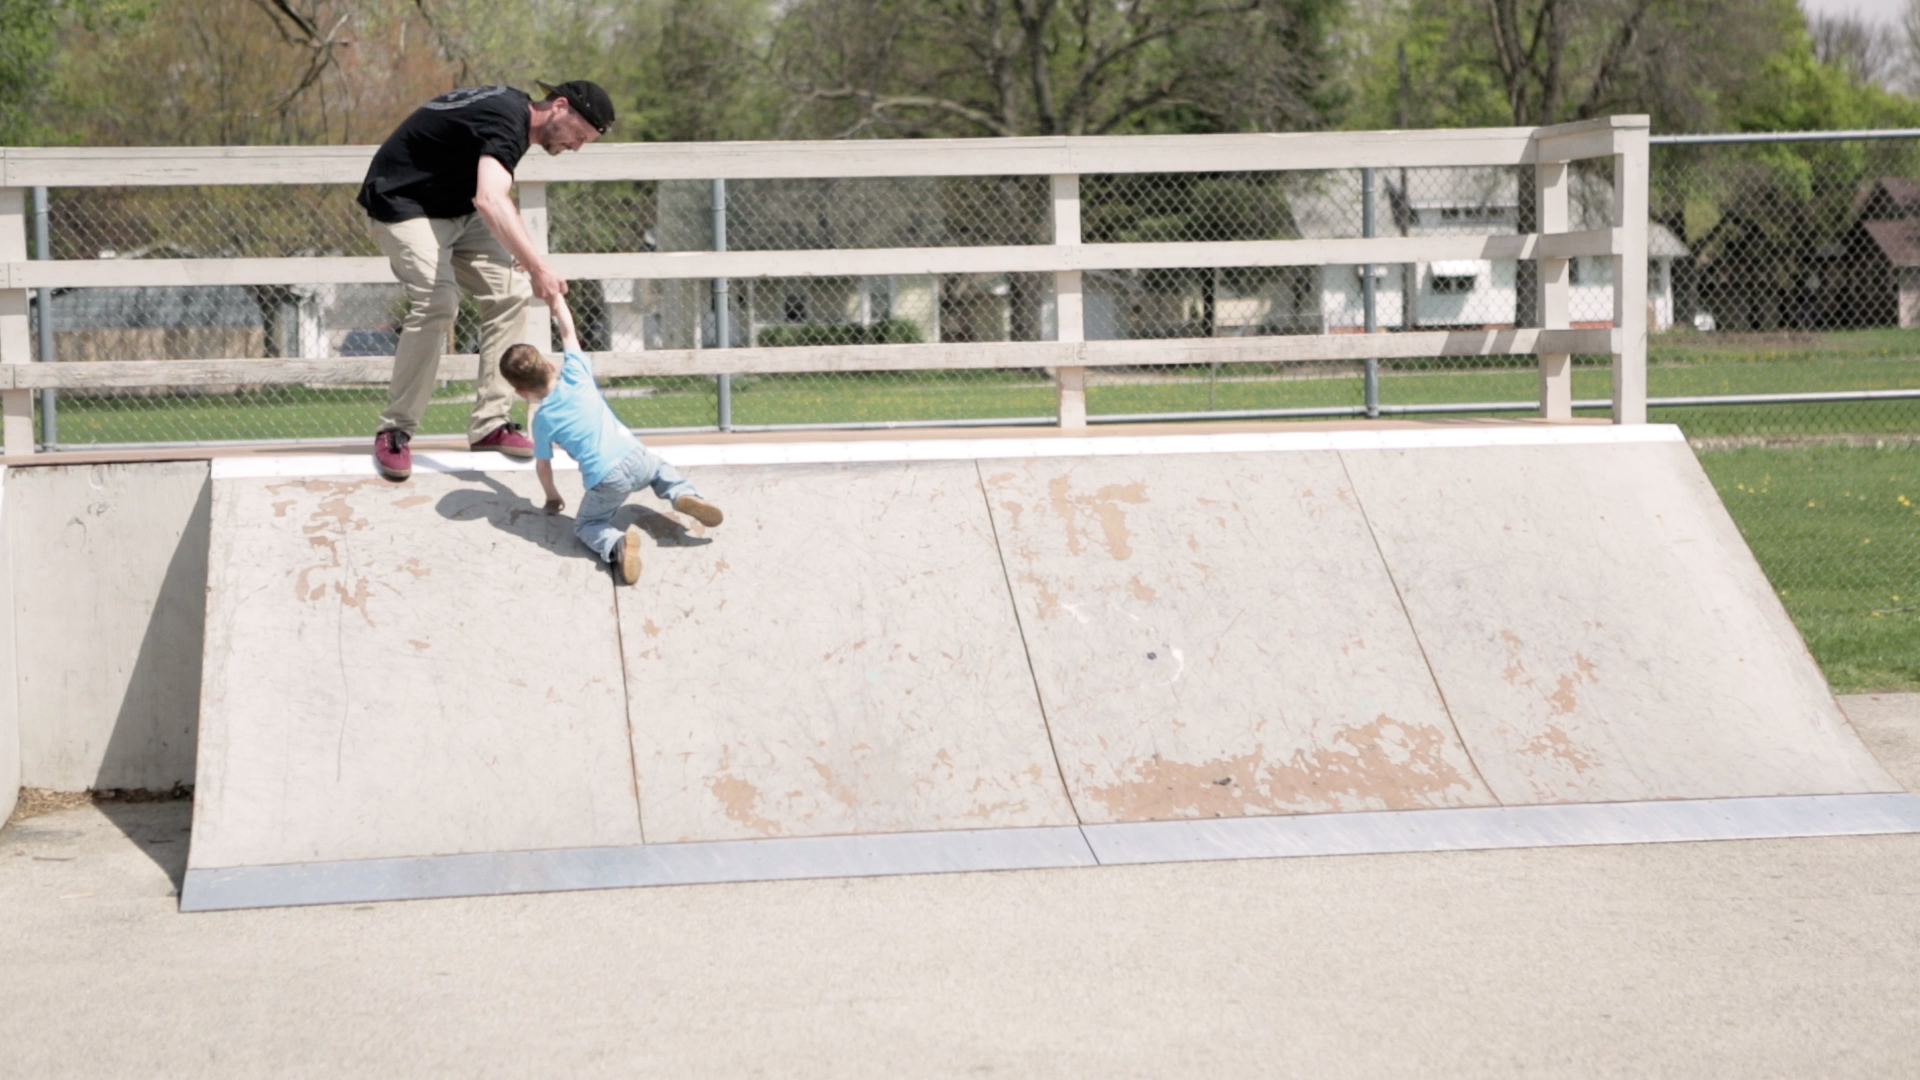 Eric helps Johnny, his second son, crest the ramp at Churchill Park, a neighborhood skatepark he lobbied to get built.